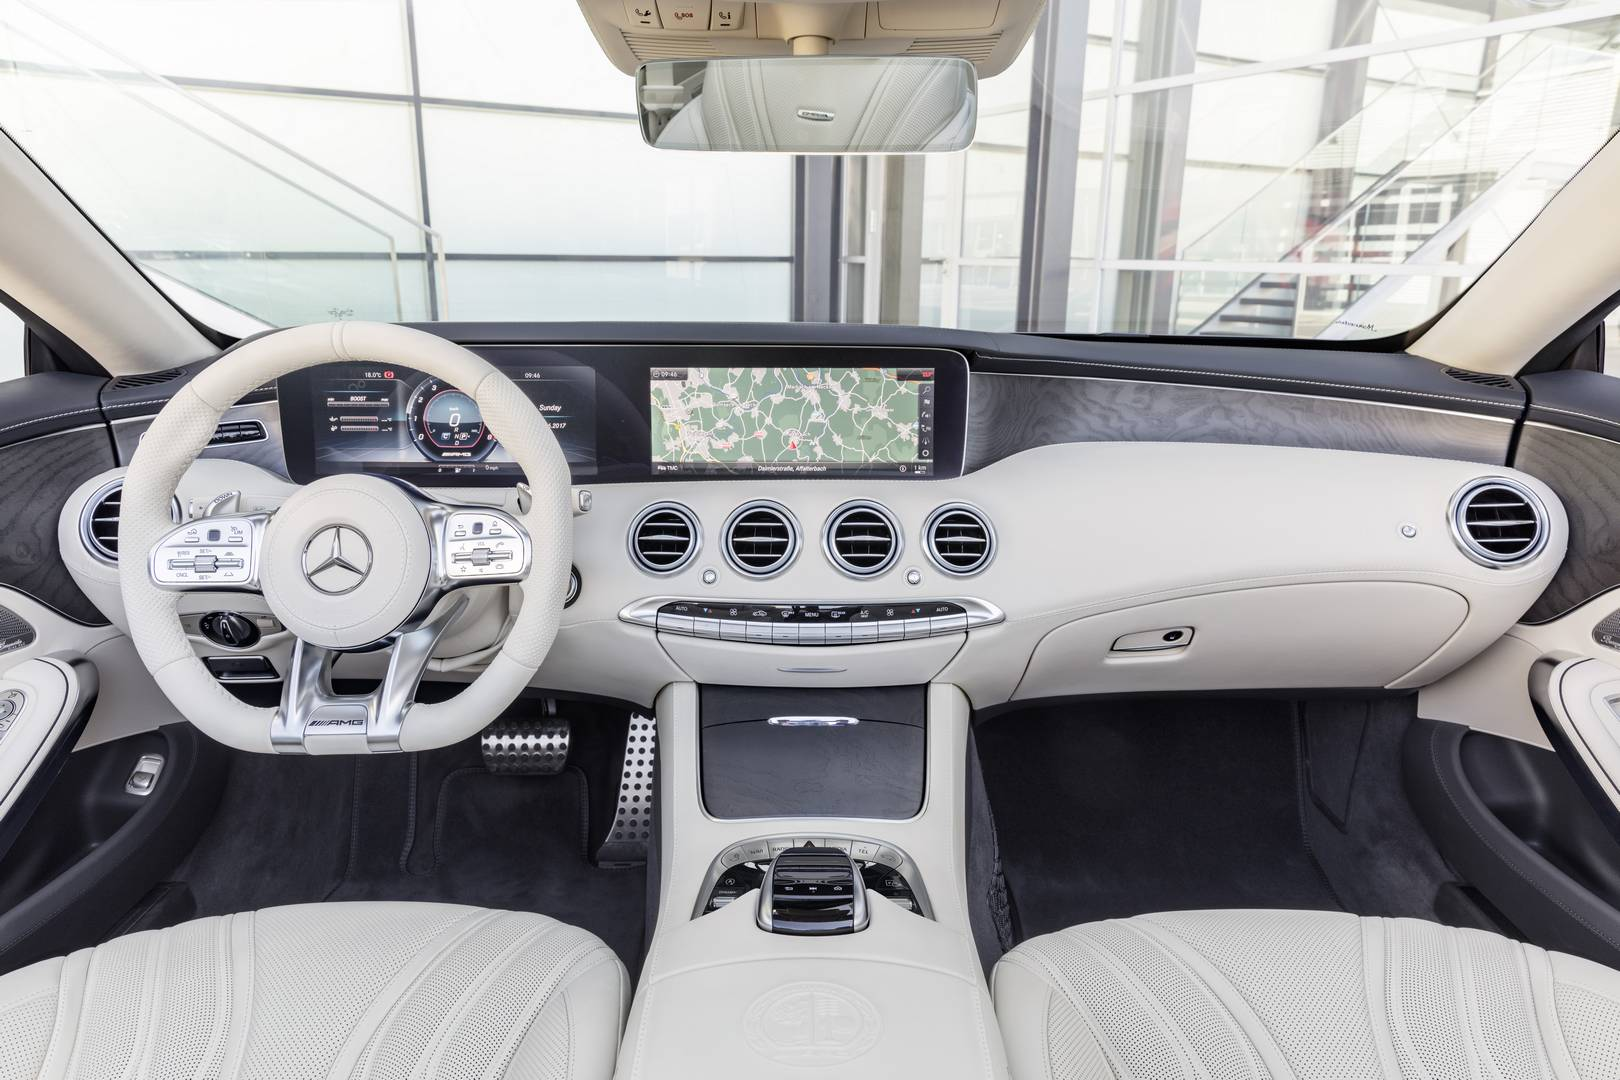 https://storage.googleapis.com/gtspirit/uploads/2017/09/Mercedes-AMG-S65-Cabriolet-10.jpg